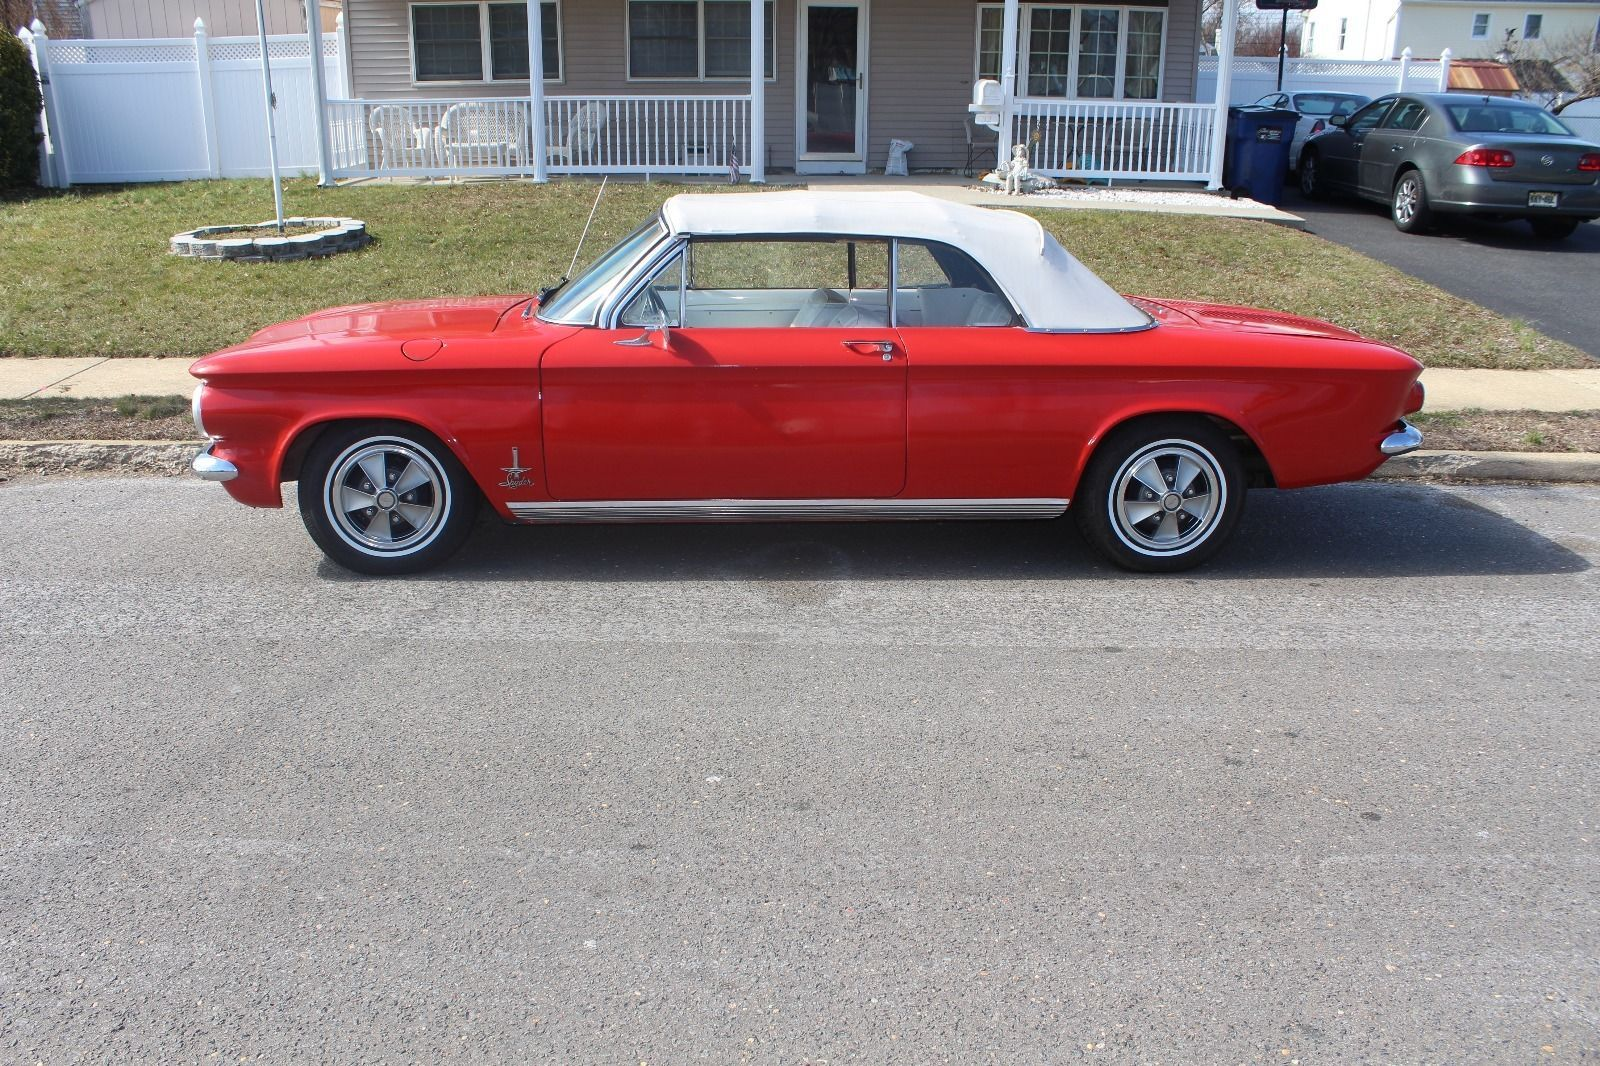 1962 Chevrolet Corvair Convertible Chevrolet Corvair Chevrolet Vintage Muscle Cars